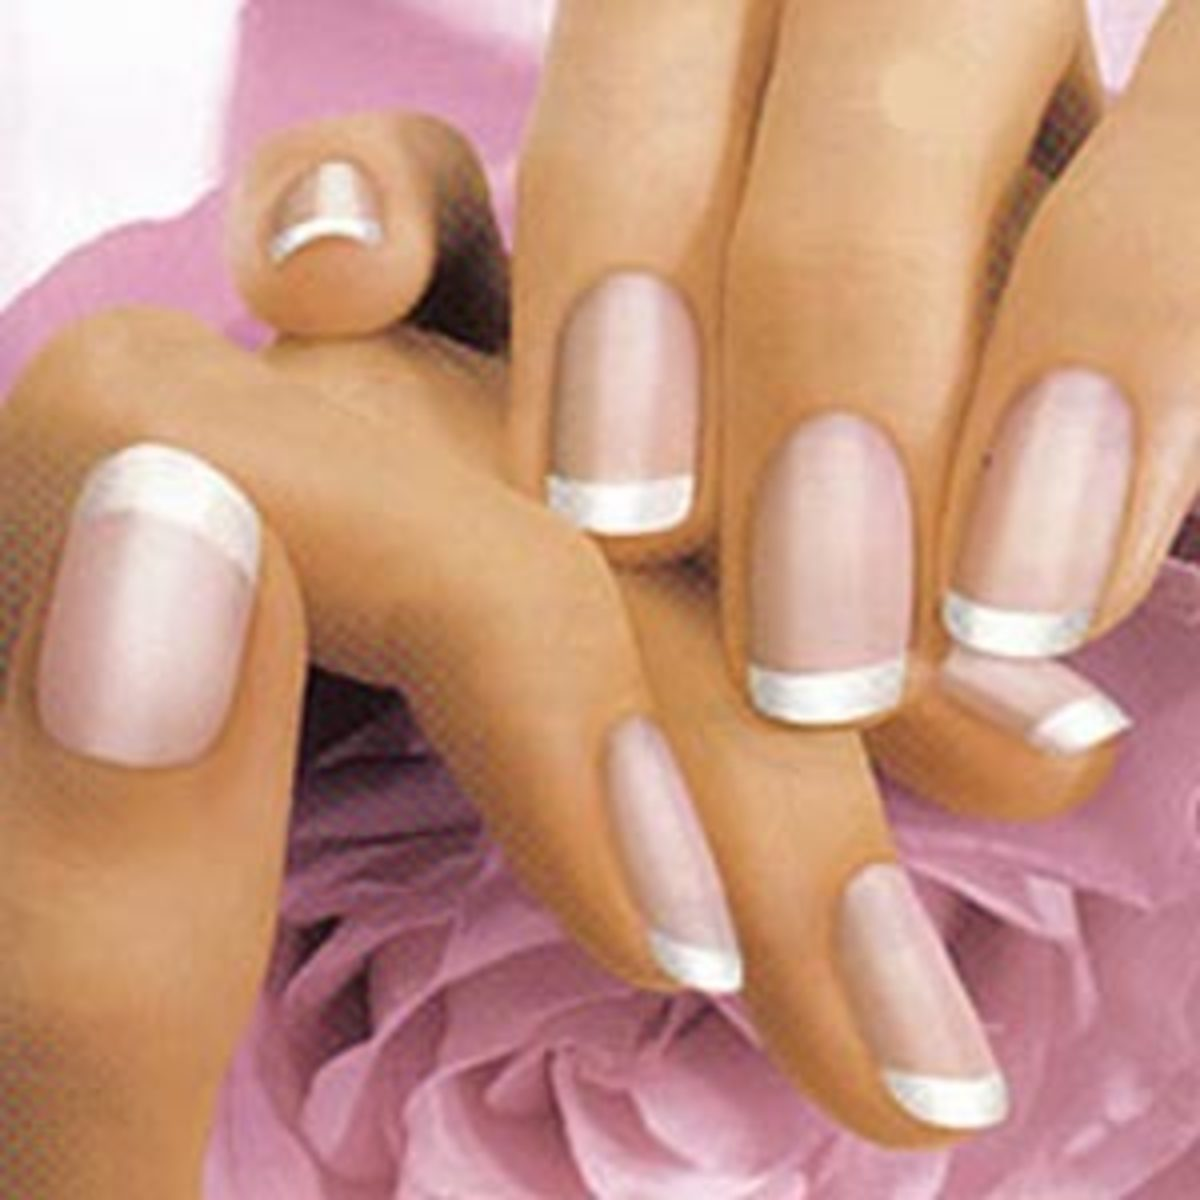 Nail Polish Different Colors: Nail Polish Colors For Different Seasons